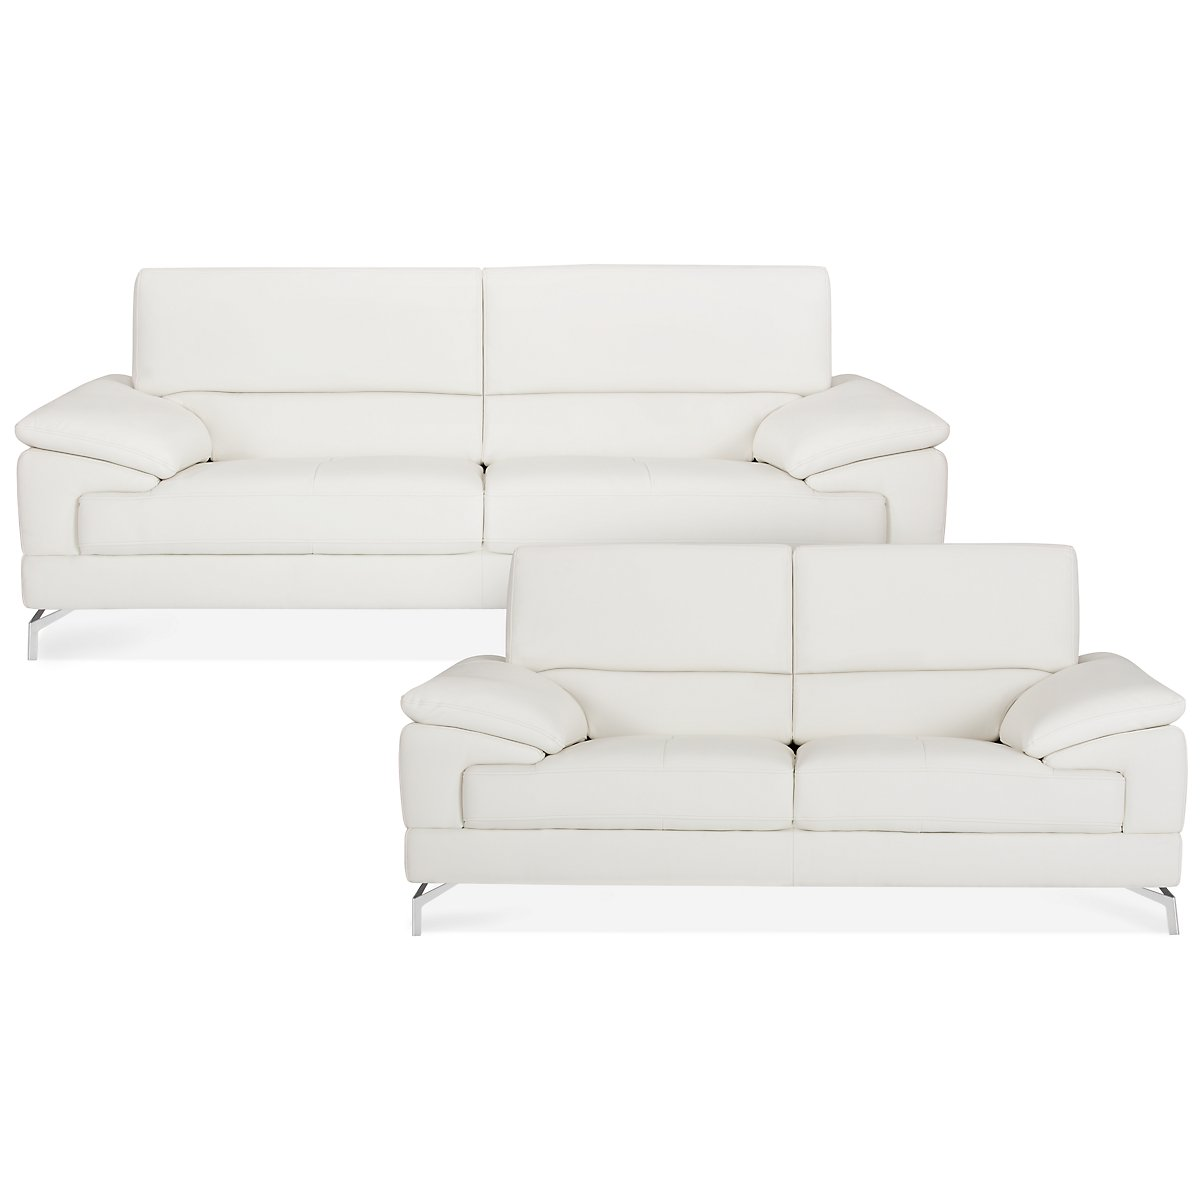 City Furniture: Dash White Microfiber Living Room